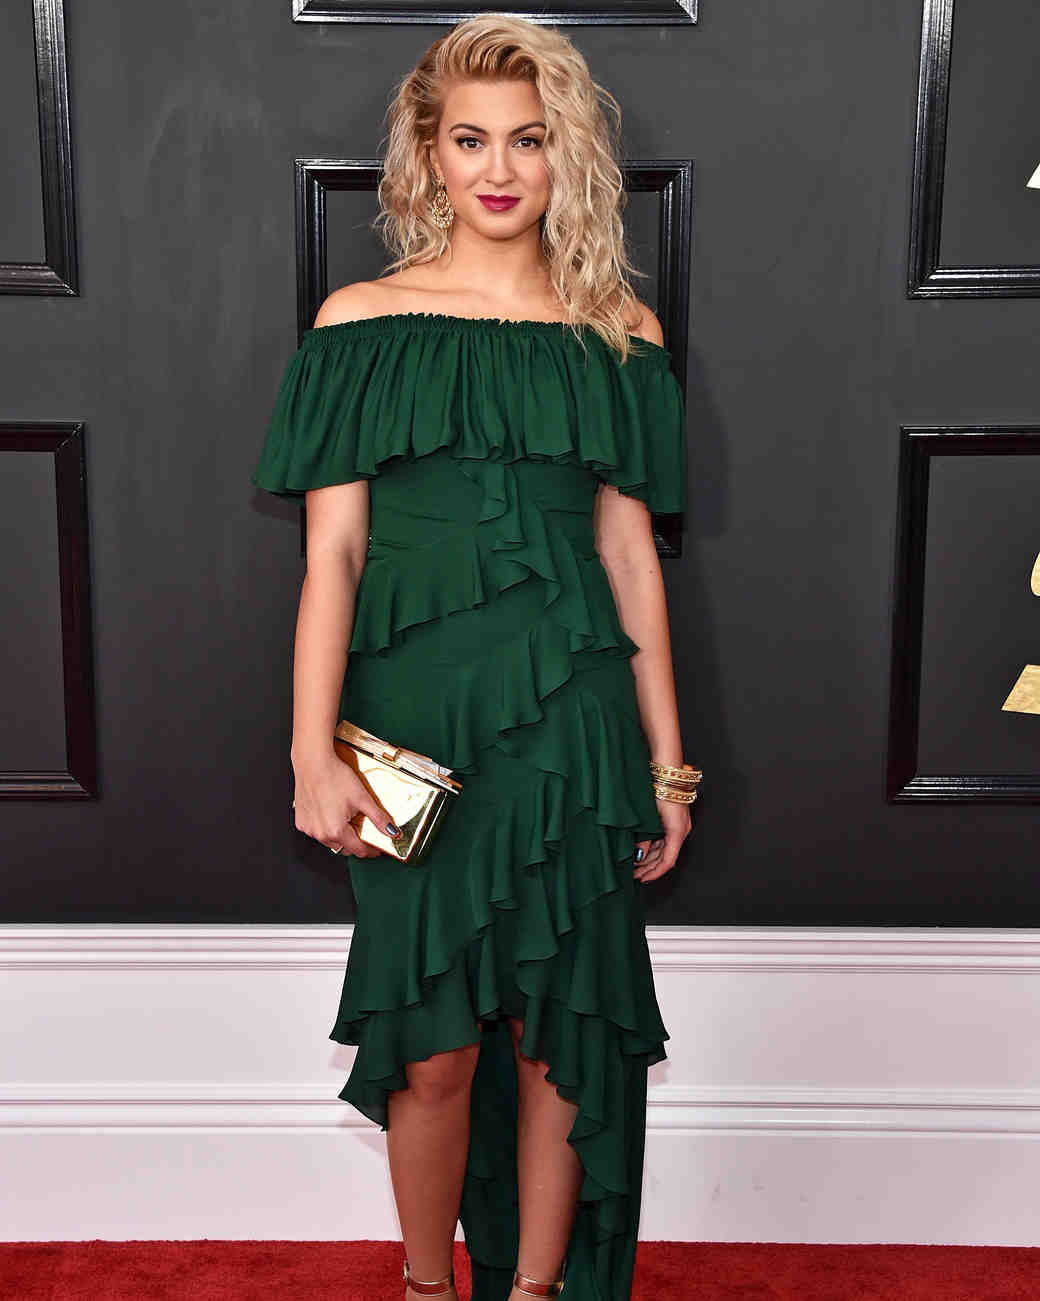 Tori Kelly at 2017 Grammy Awards